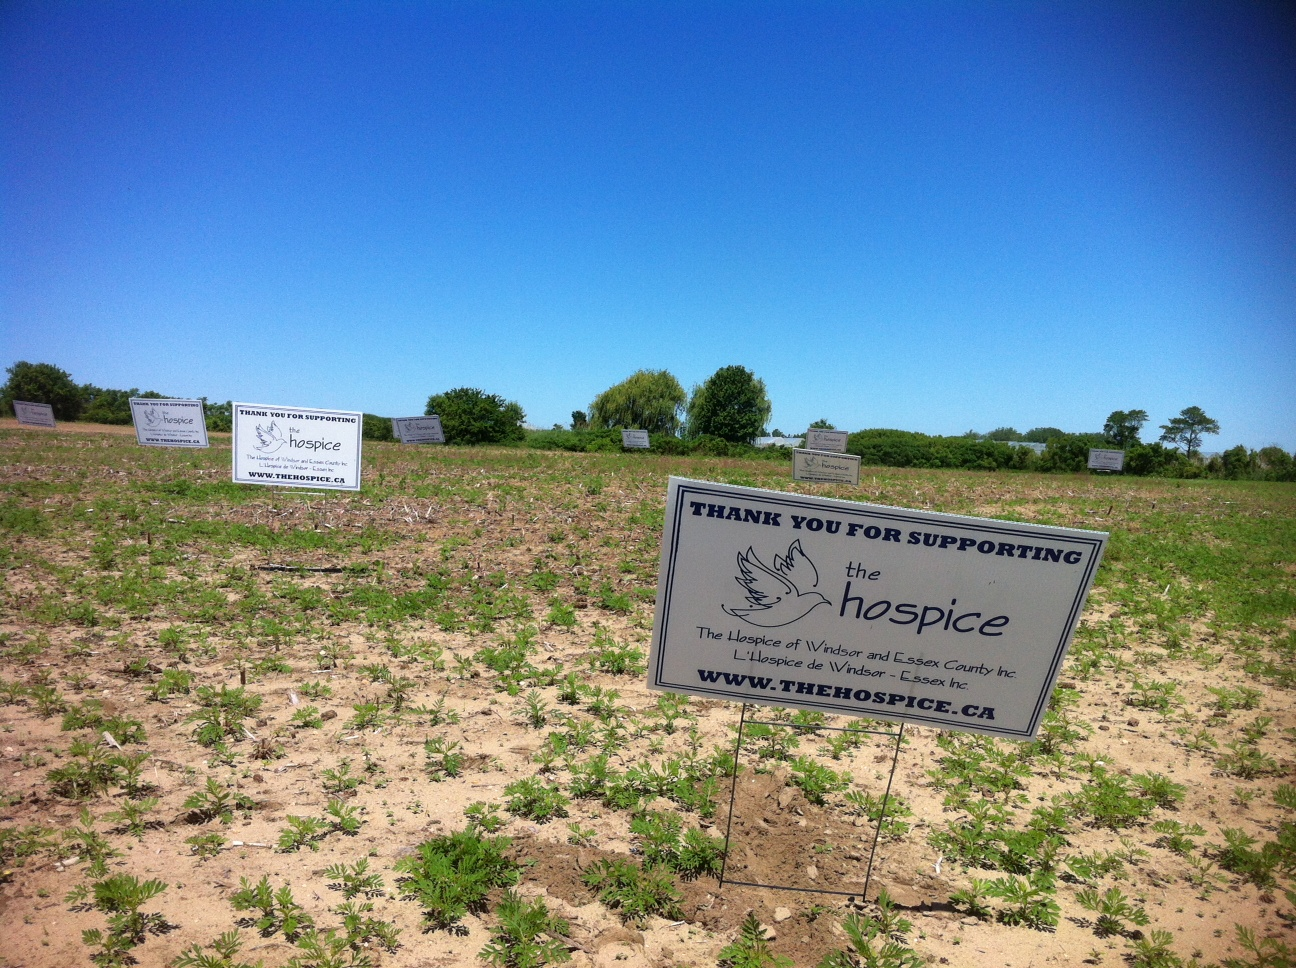 The site of the future hospice in Leamington, June 5, 2014. (Photo by Kevin Black)